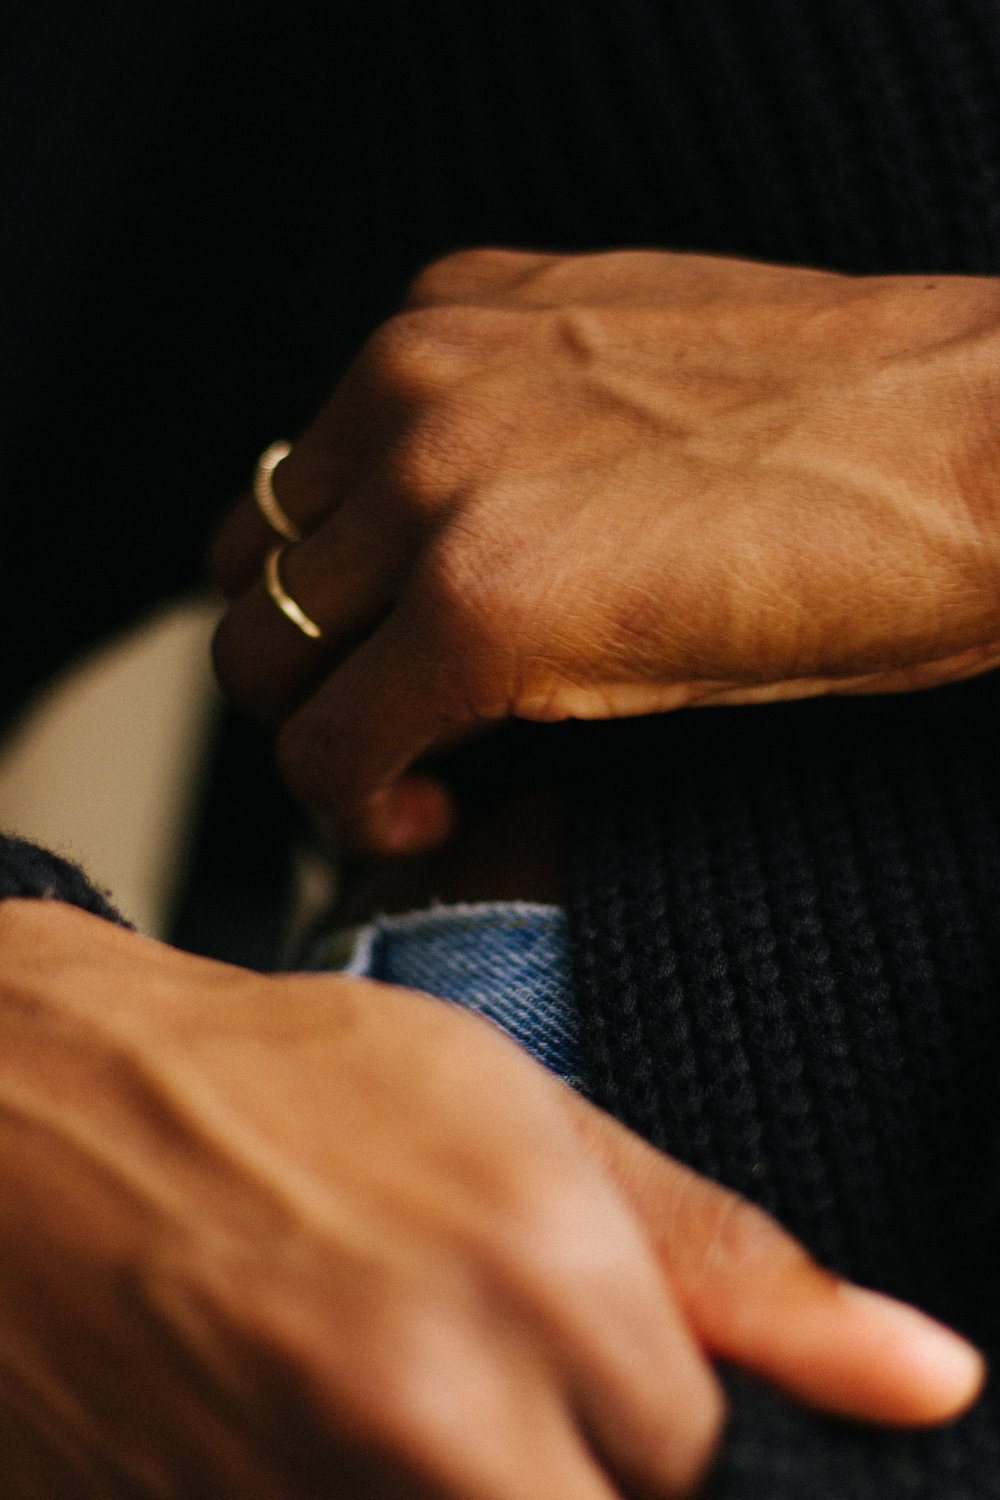 A close up photograph of gold rings and levi jeans.